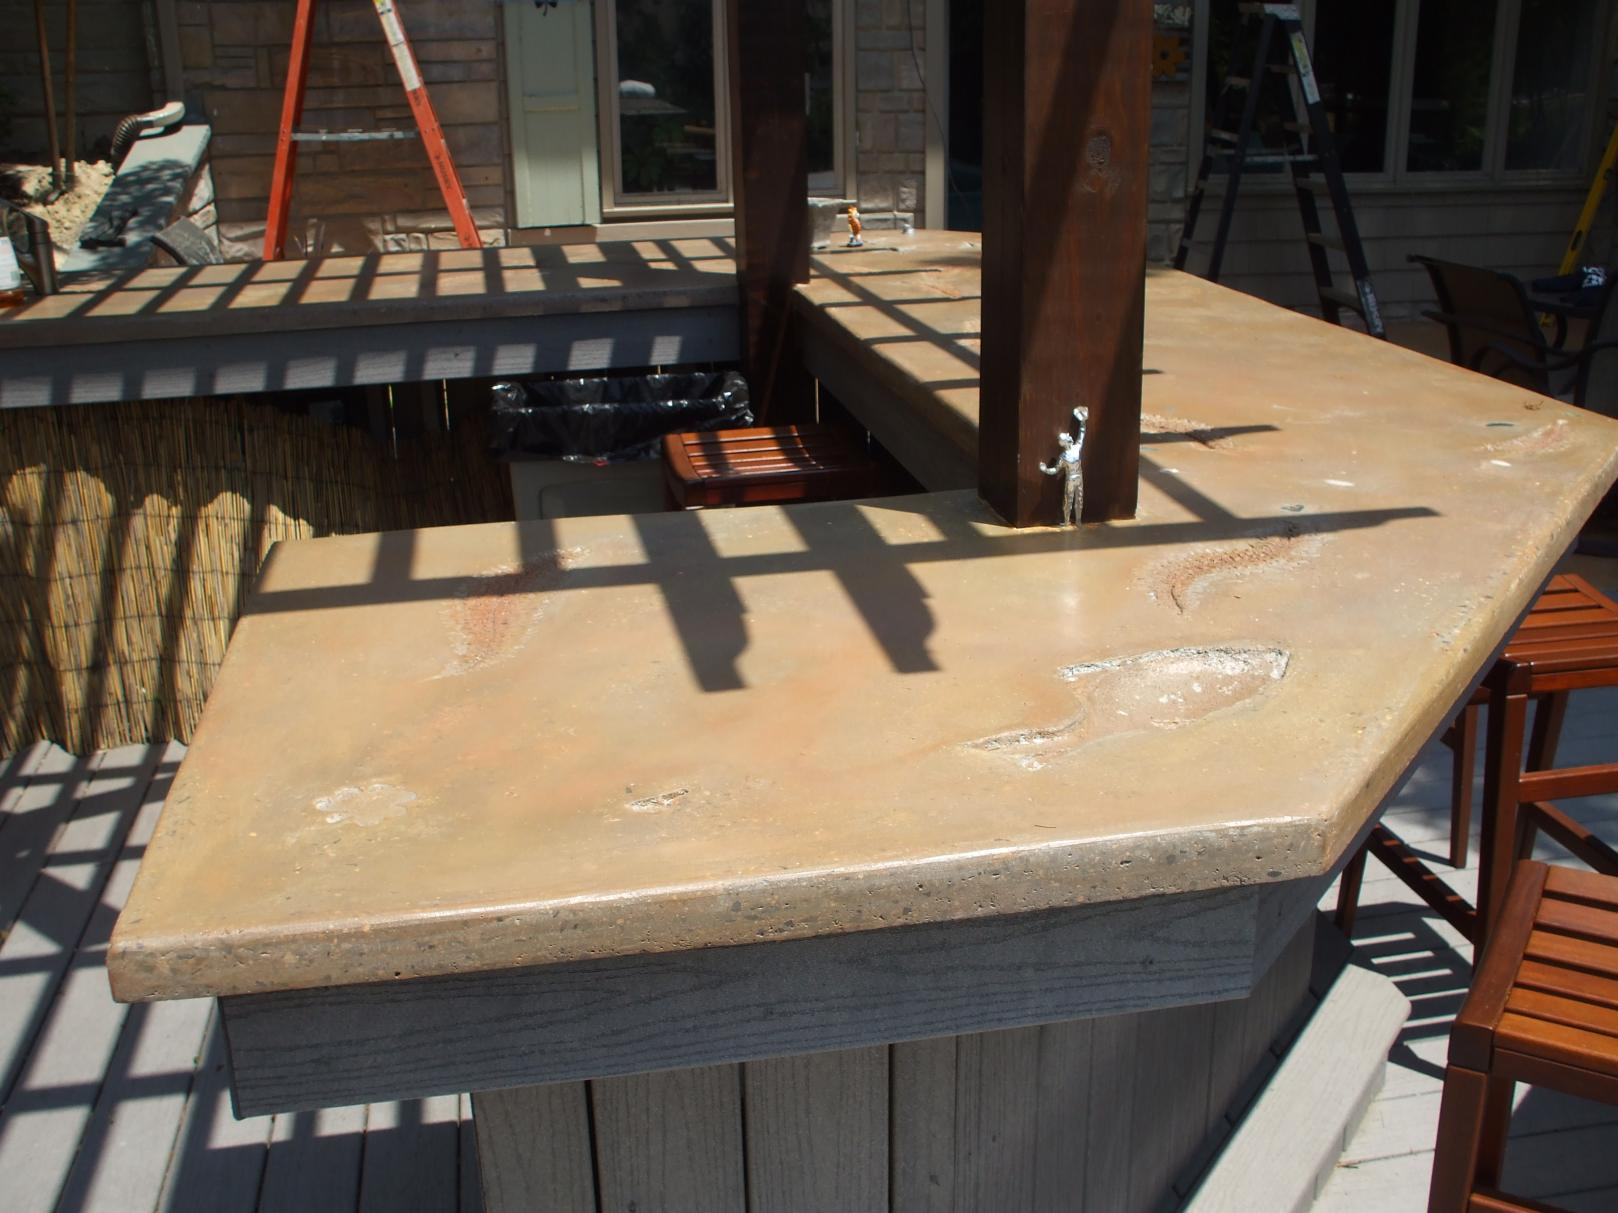 Outdoor Concrete Counter Tops - Masonry - Contractor Talk